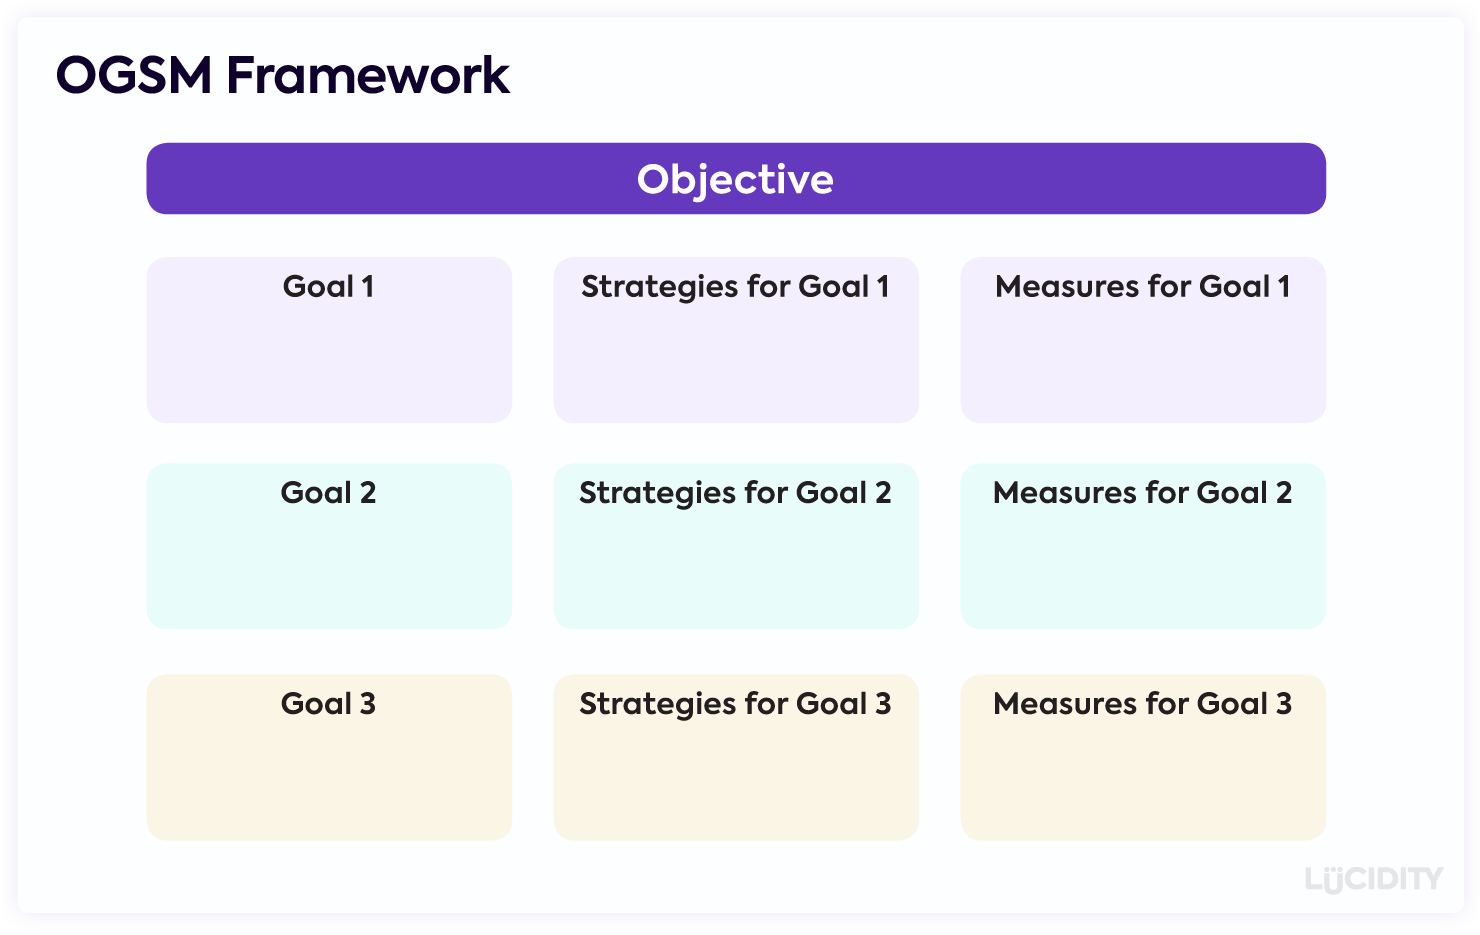 OGSM Framework showing an Objective with multiple Goals, each with Strategies and Measurements under it.